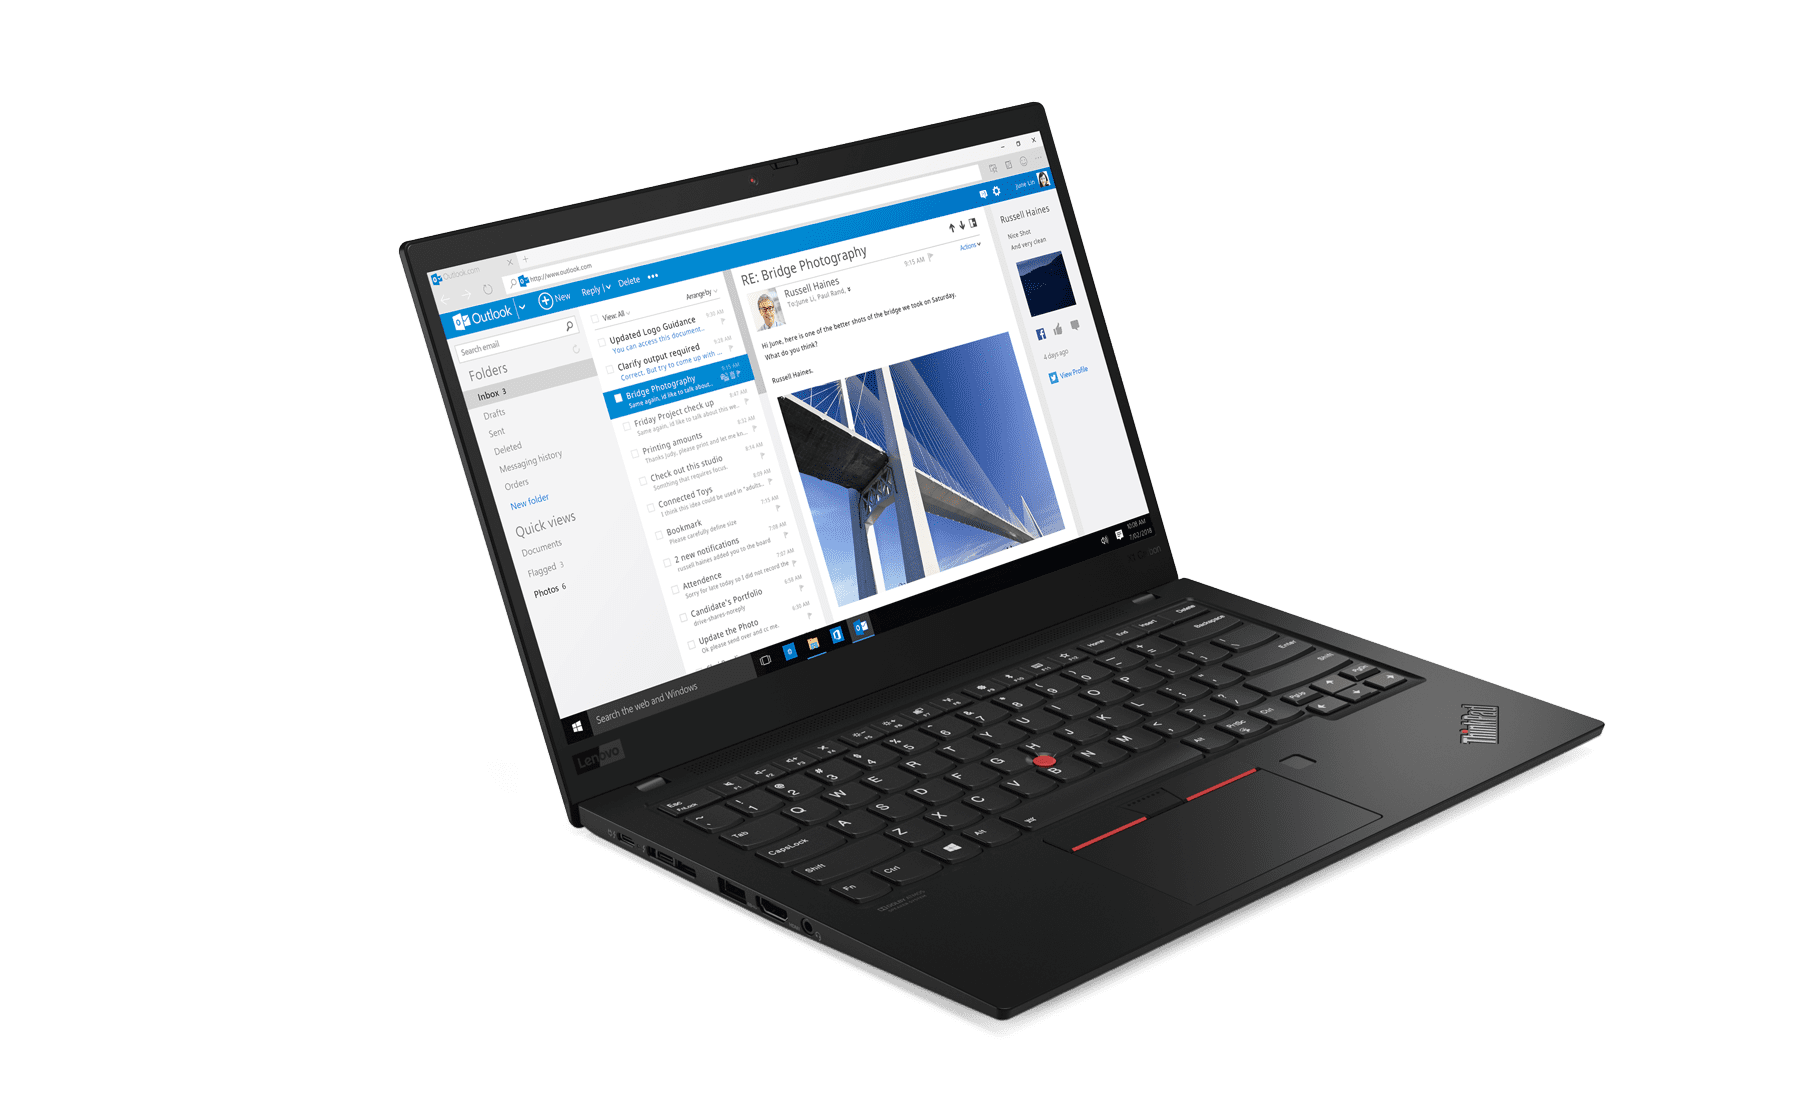 ThinkPad X1 Carbon - Front